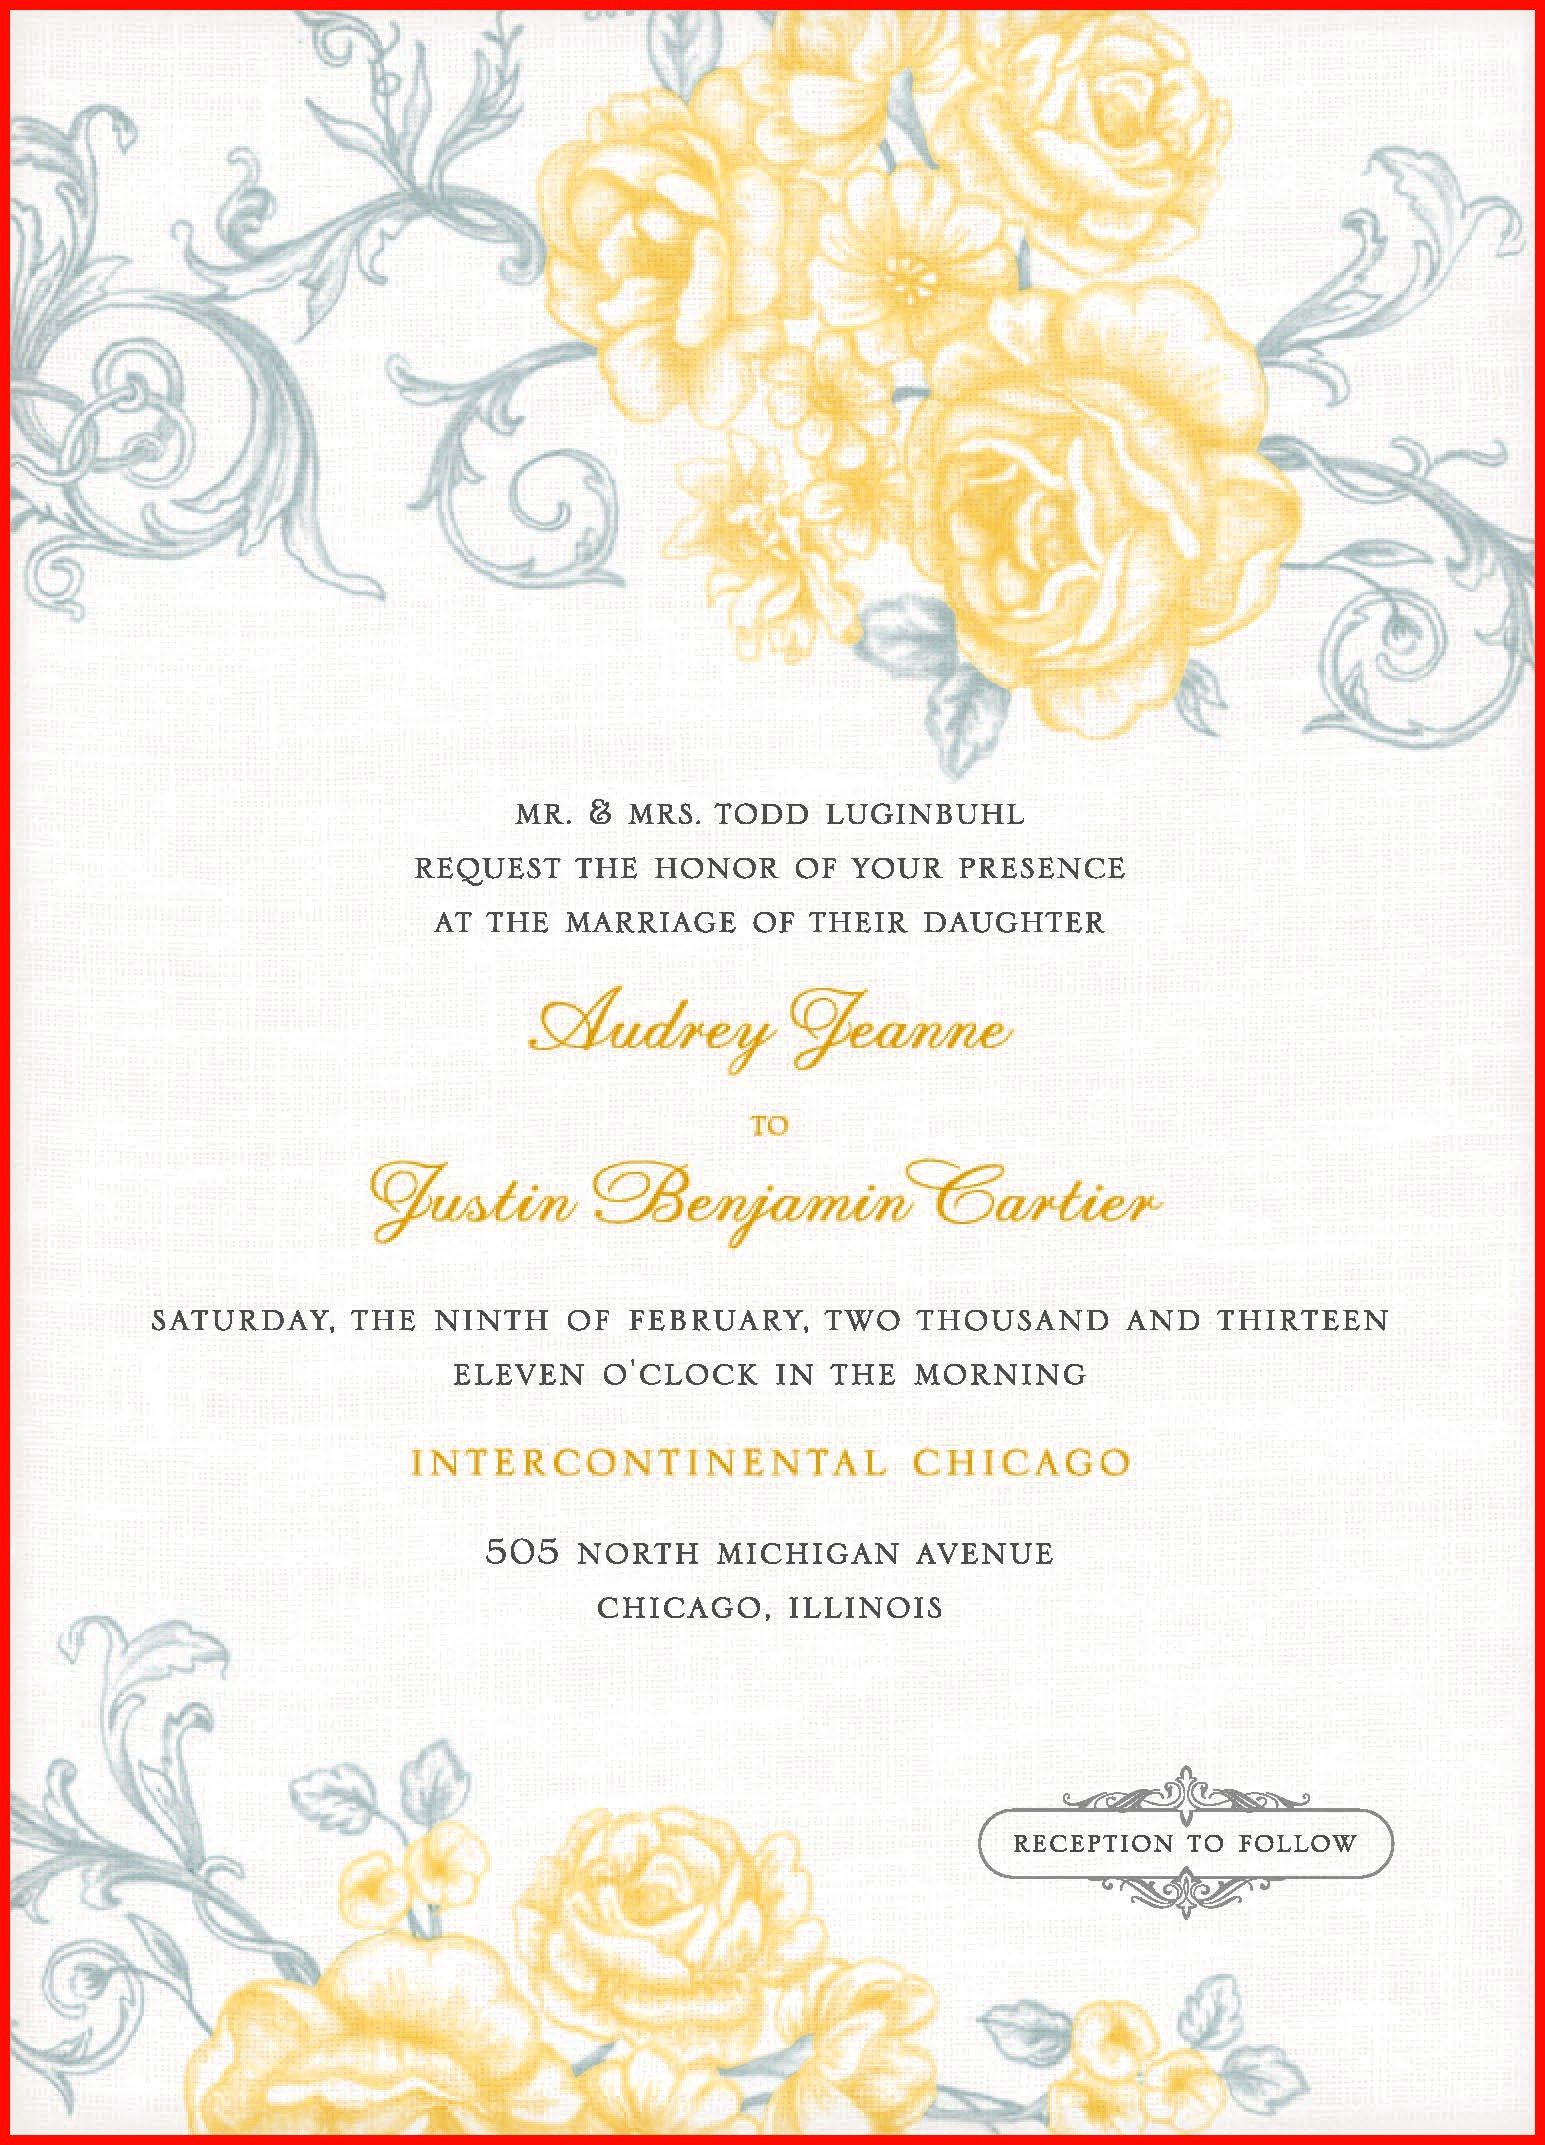 002 Incredible Free Invitation Template Word Design  Wedding For Tamil Christma PartyFull